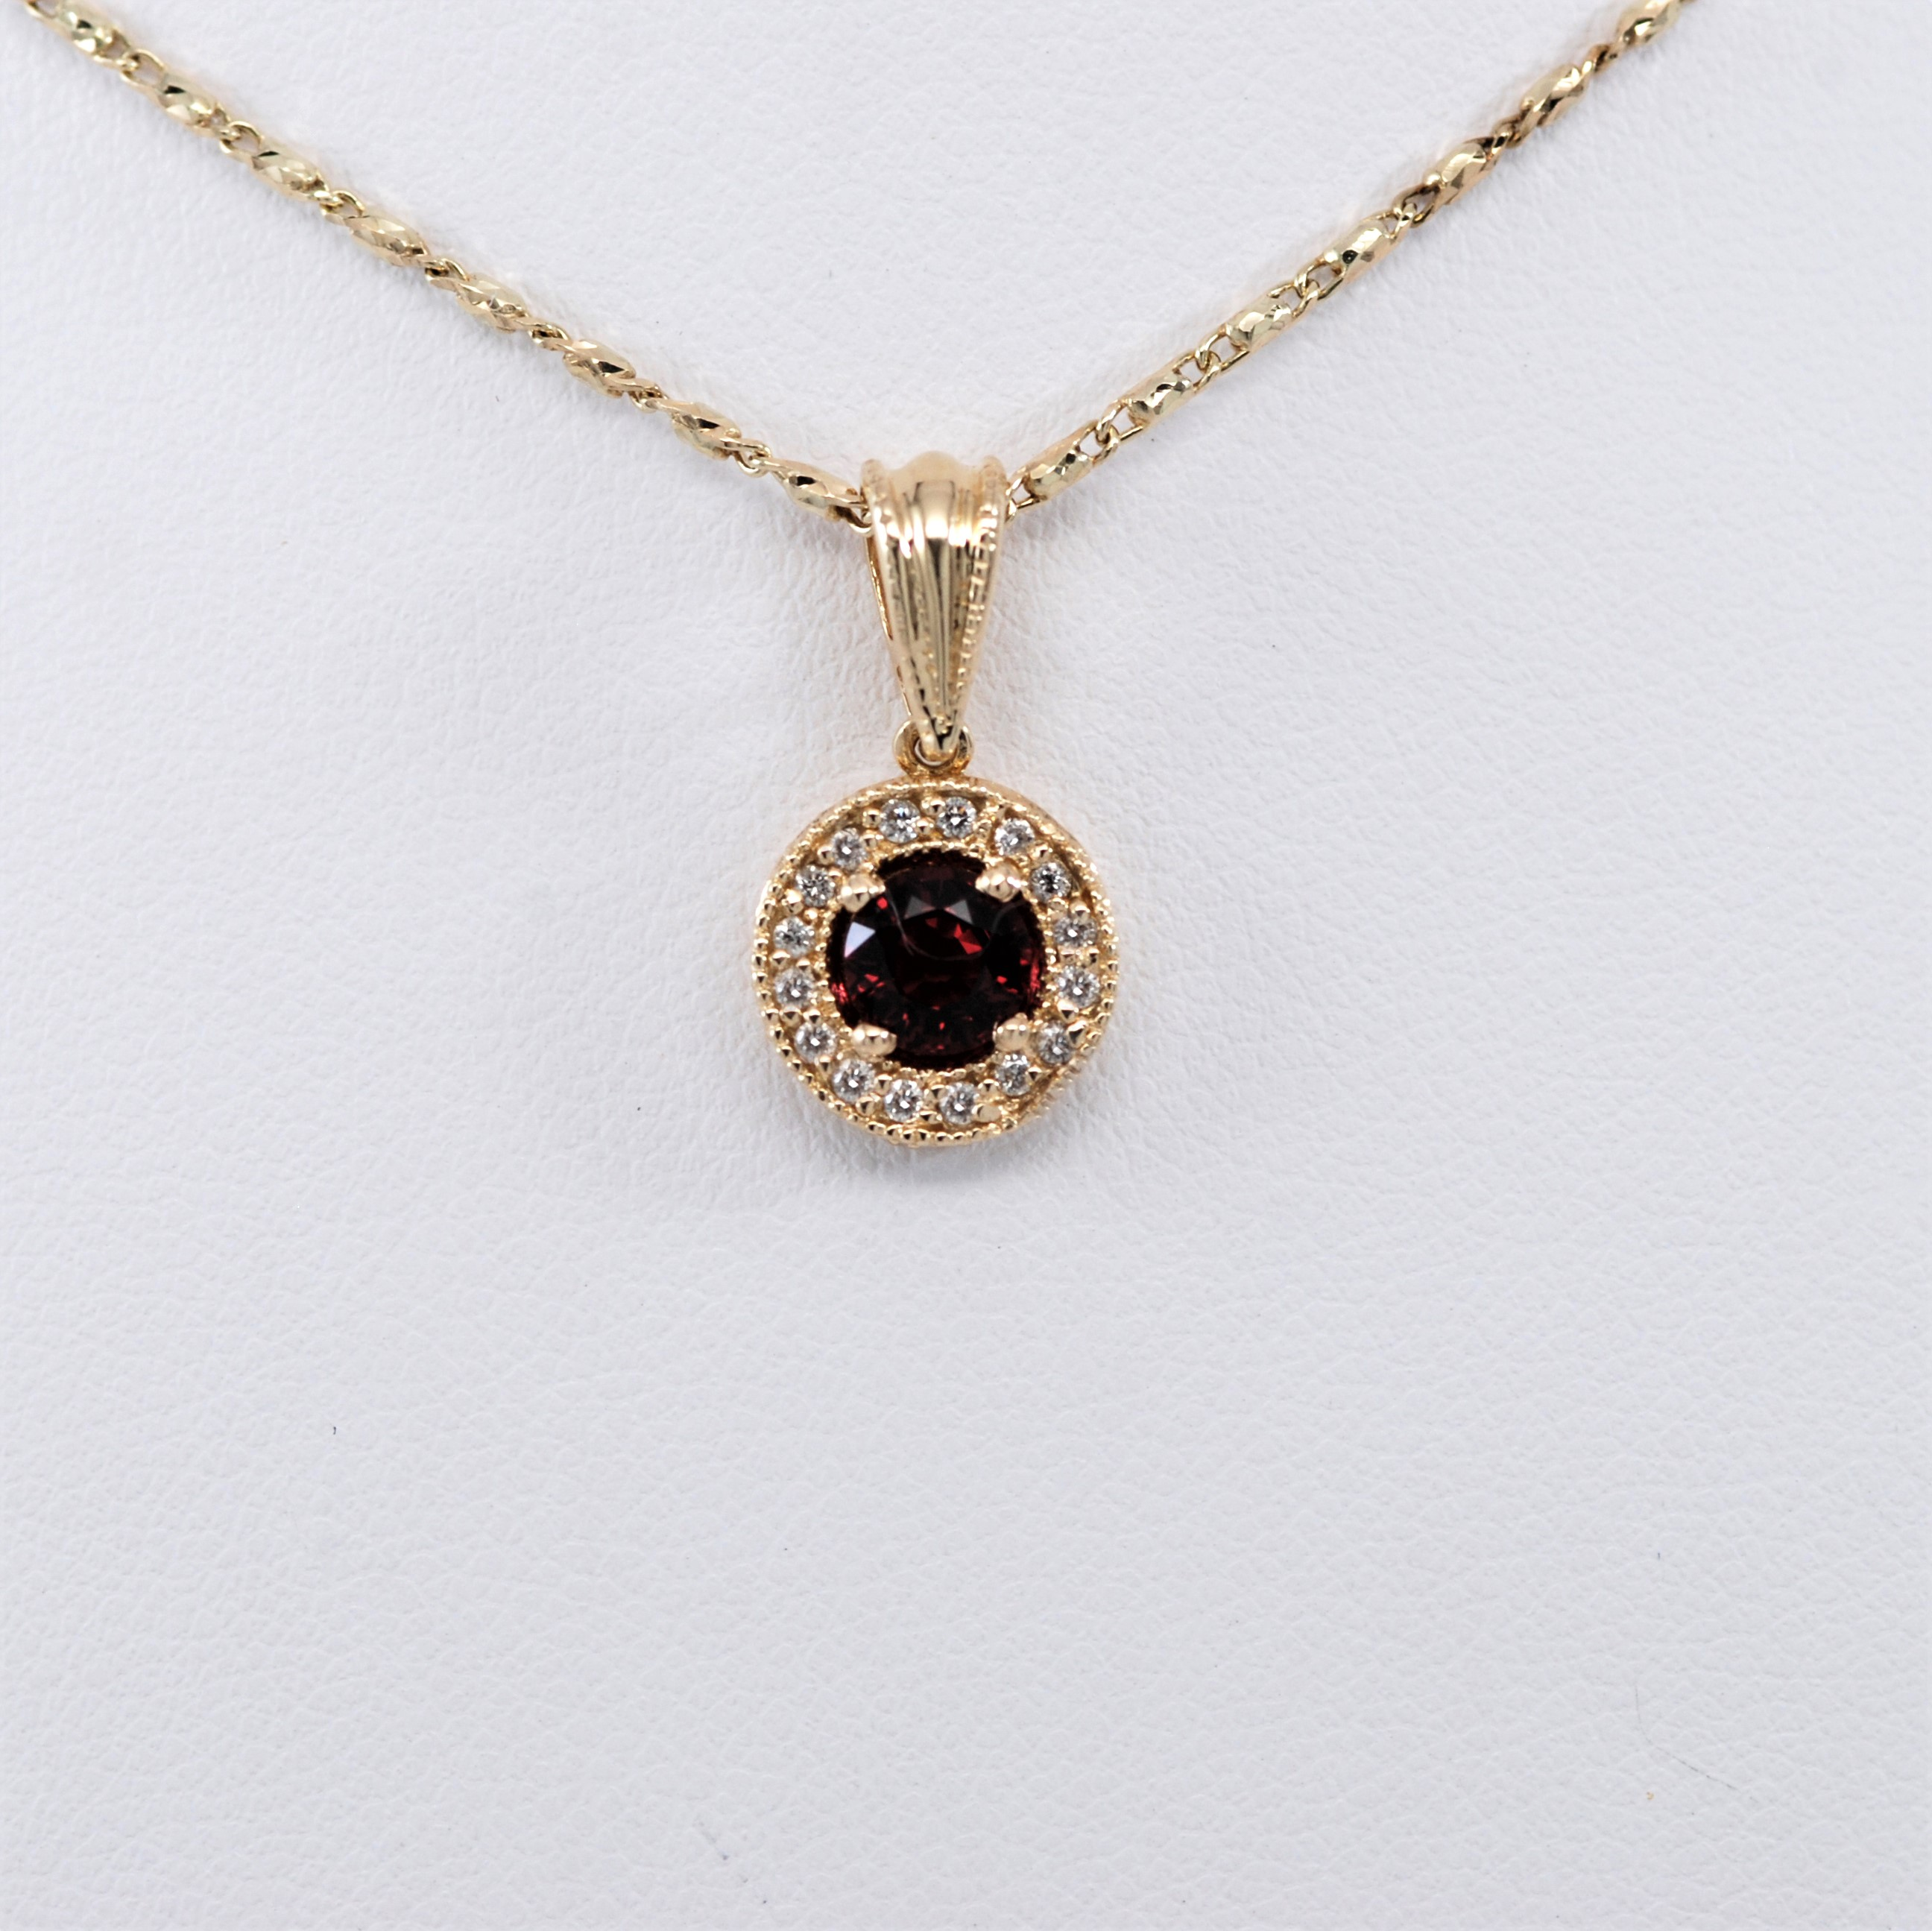 eternal hanging necklace design product black gold behind vaults white flowers spinel collection wedding